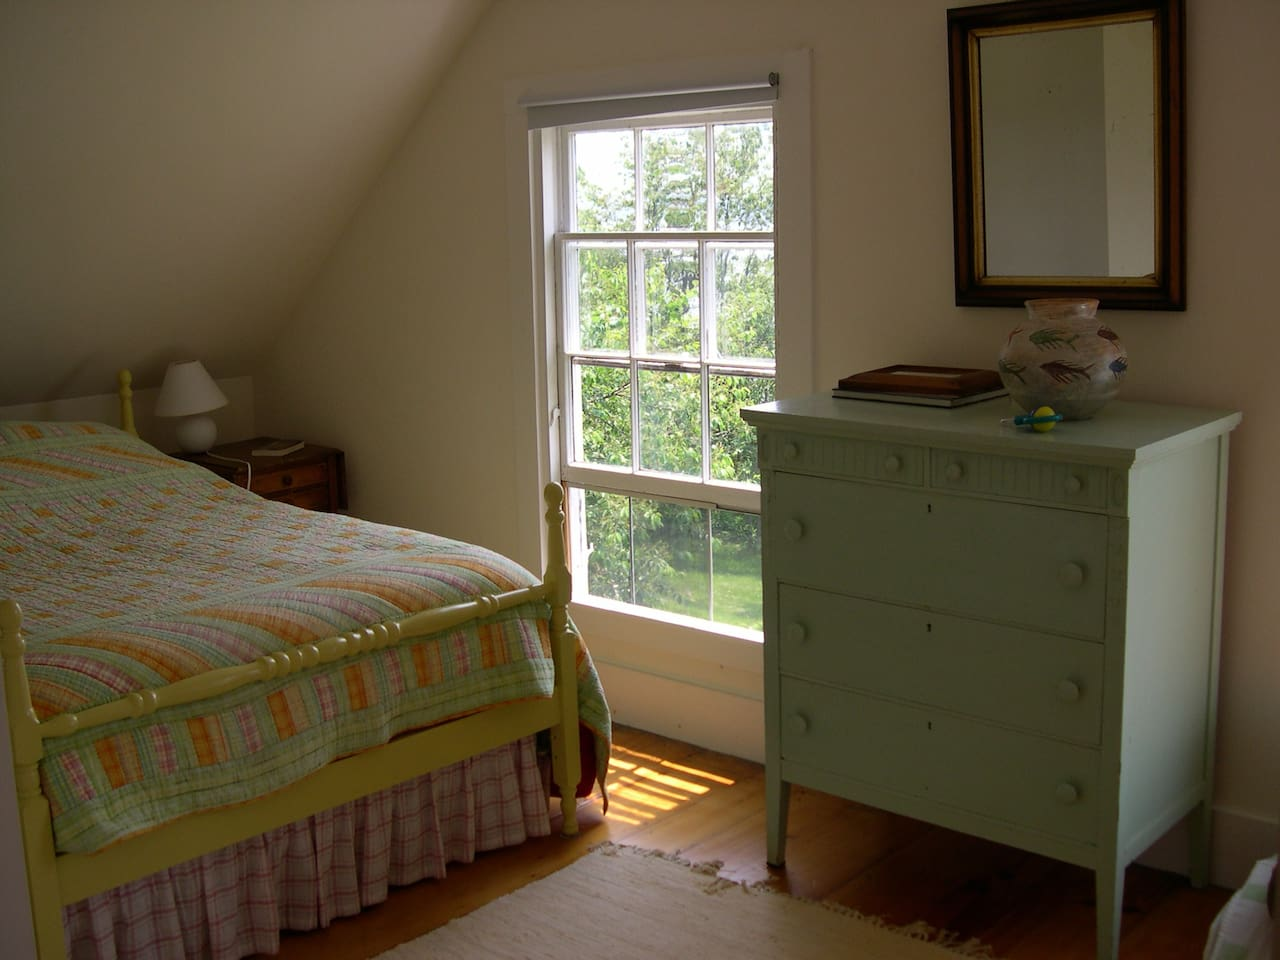 The guest bedroom, desk is to the left; to the right of the bureau is a rocking chair and another window.